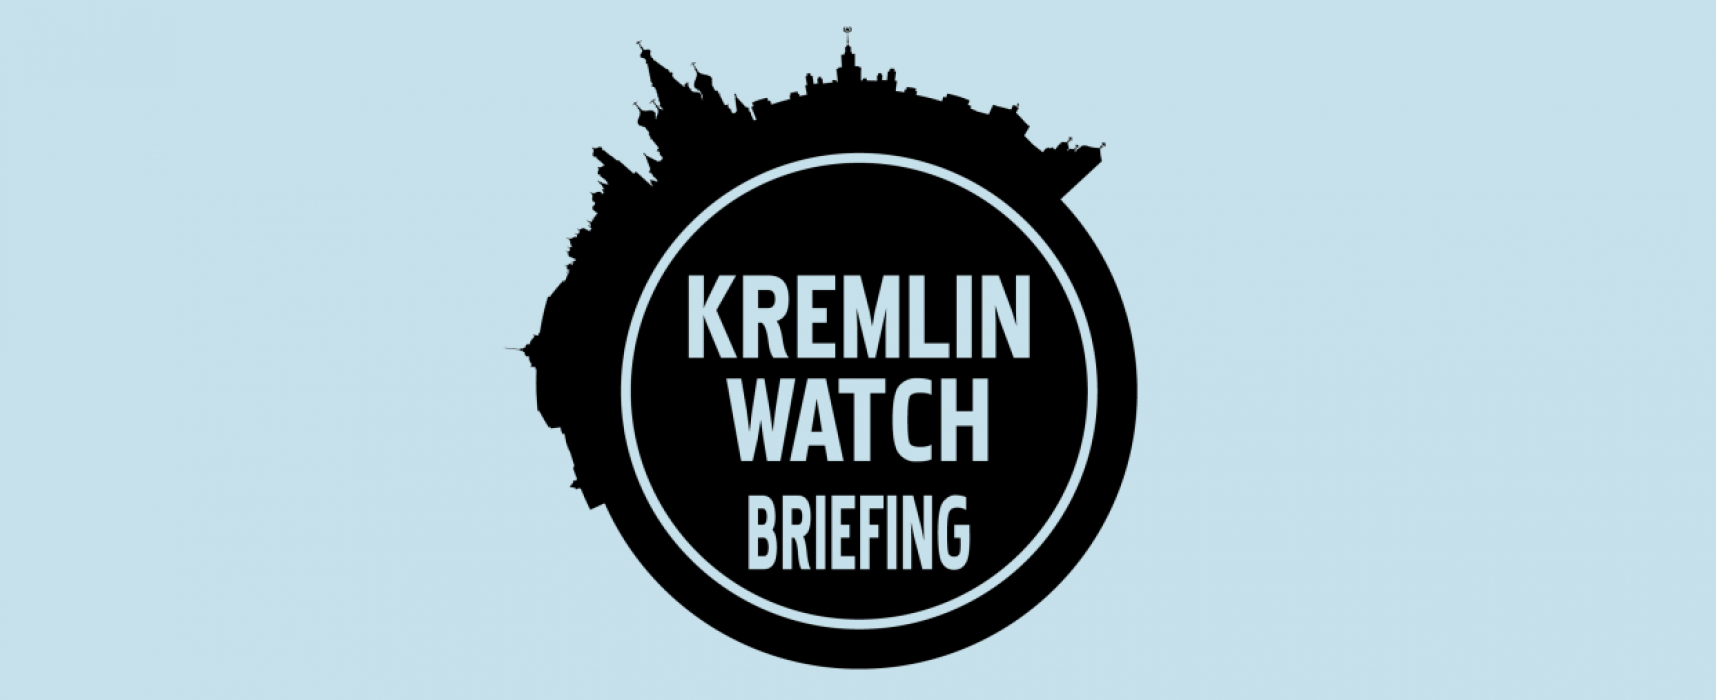 Kremlin Watch Briefing: Russian influence operations in Africa and South America under spotlight